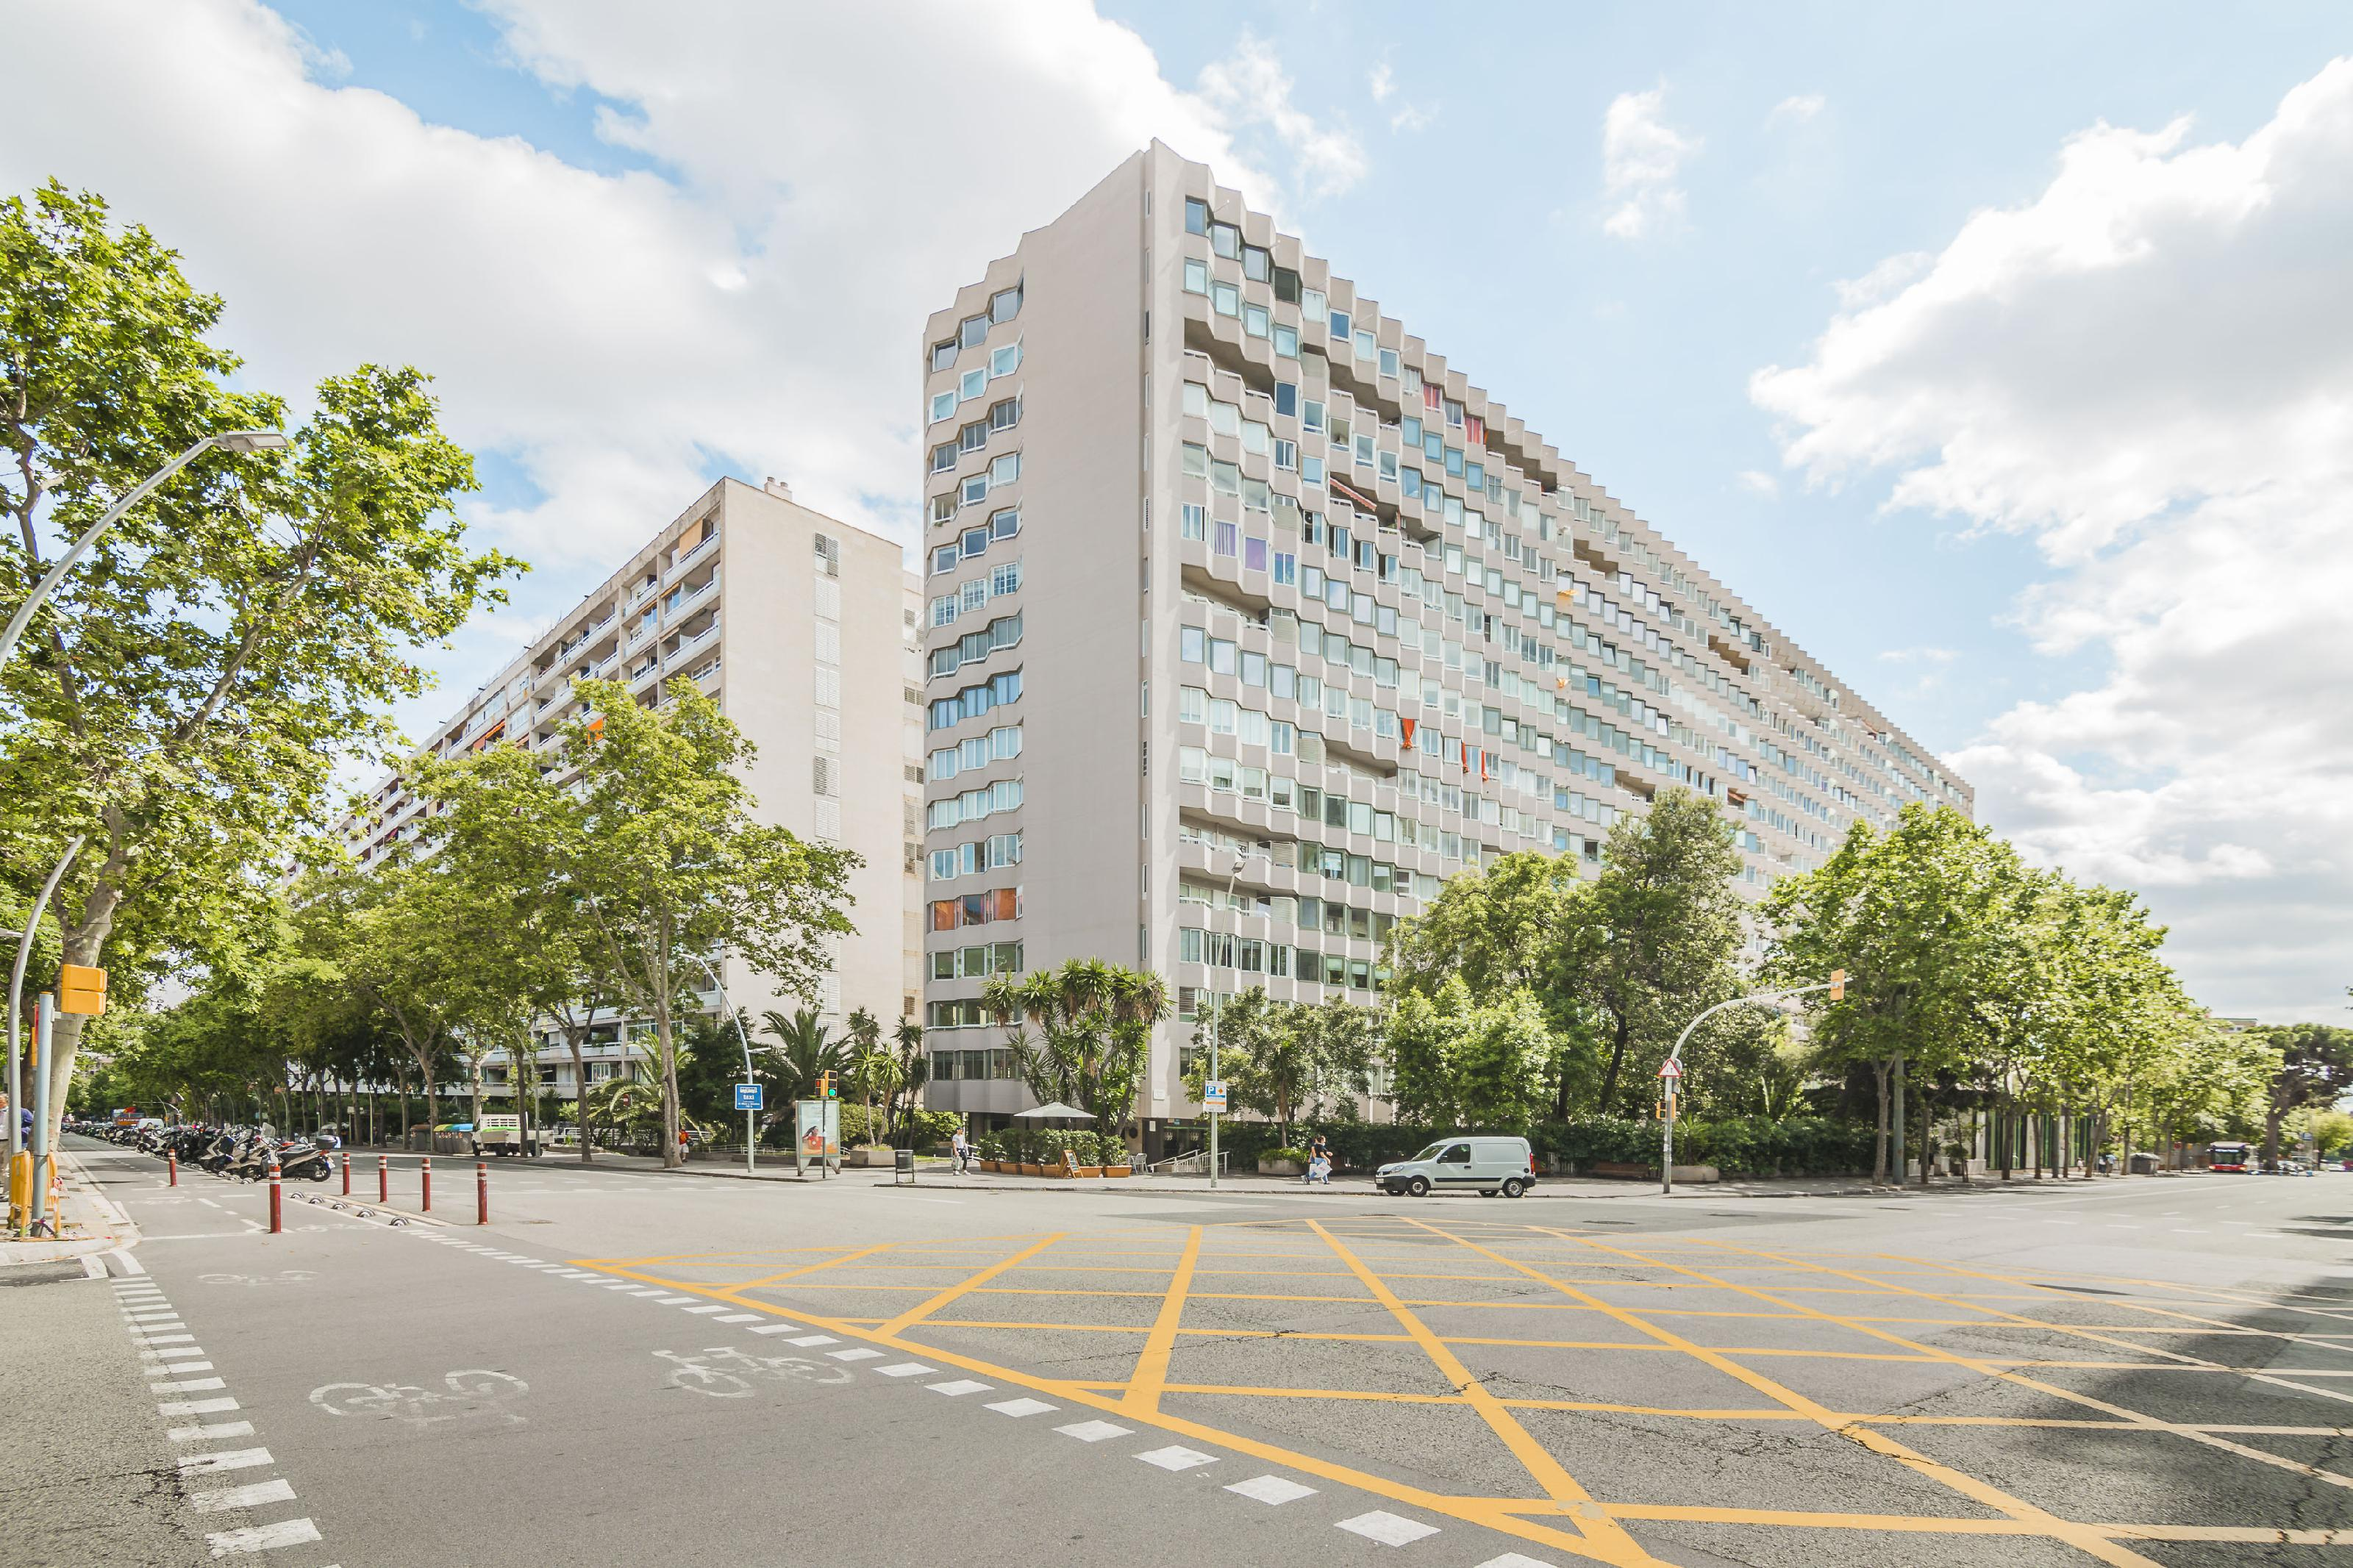 239426 Flat for sale in Les Corts, Les Corts 24